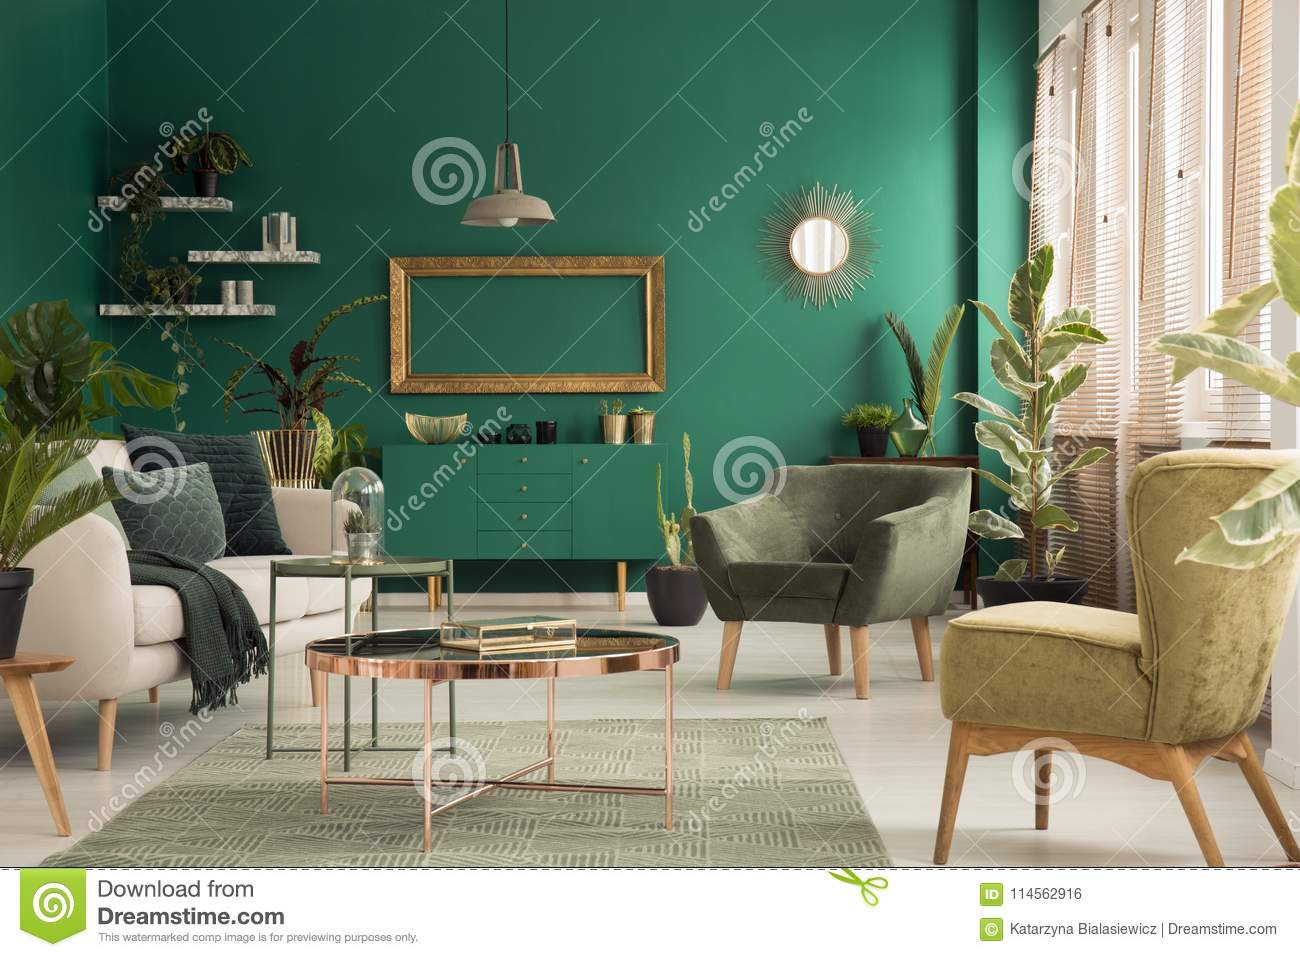 Copper table on rug between beige sofa and armchair in green spacious living room interior with mockup